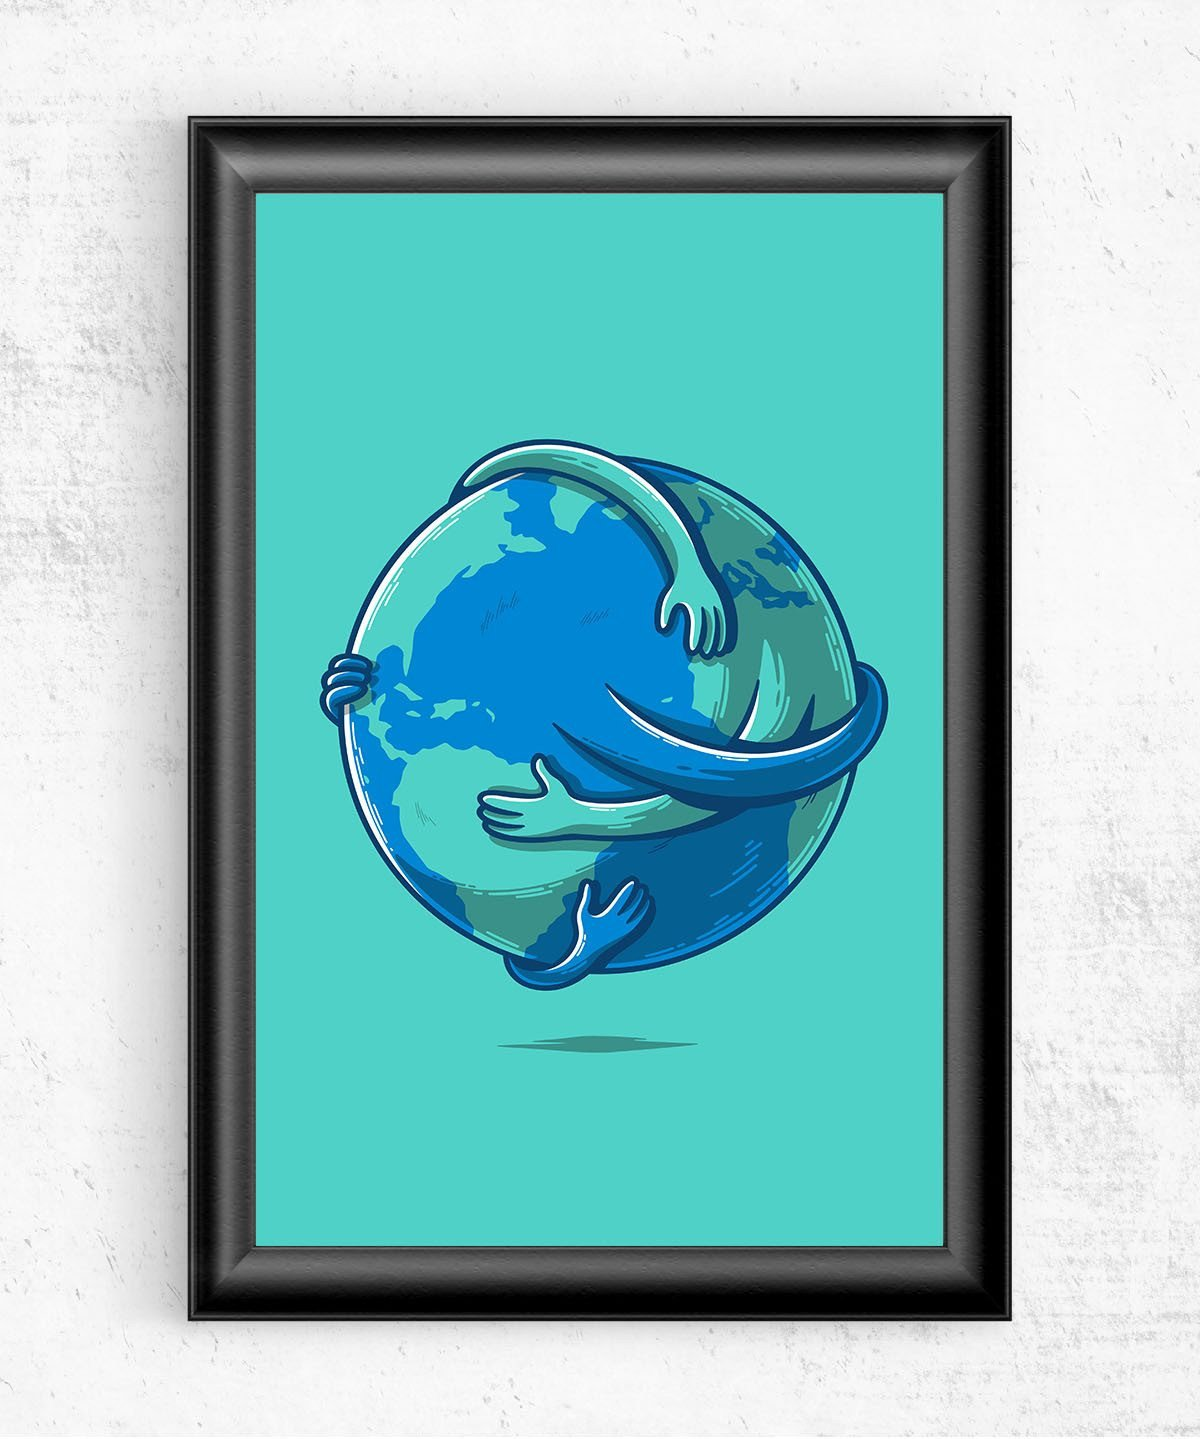 Universal Brotherhood Posters by Elia Colombo - Pixel Empire